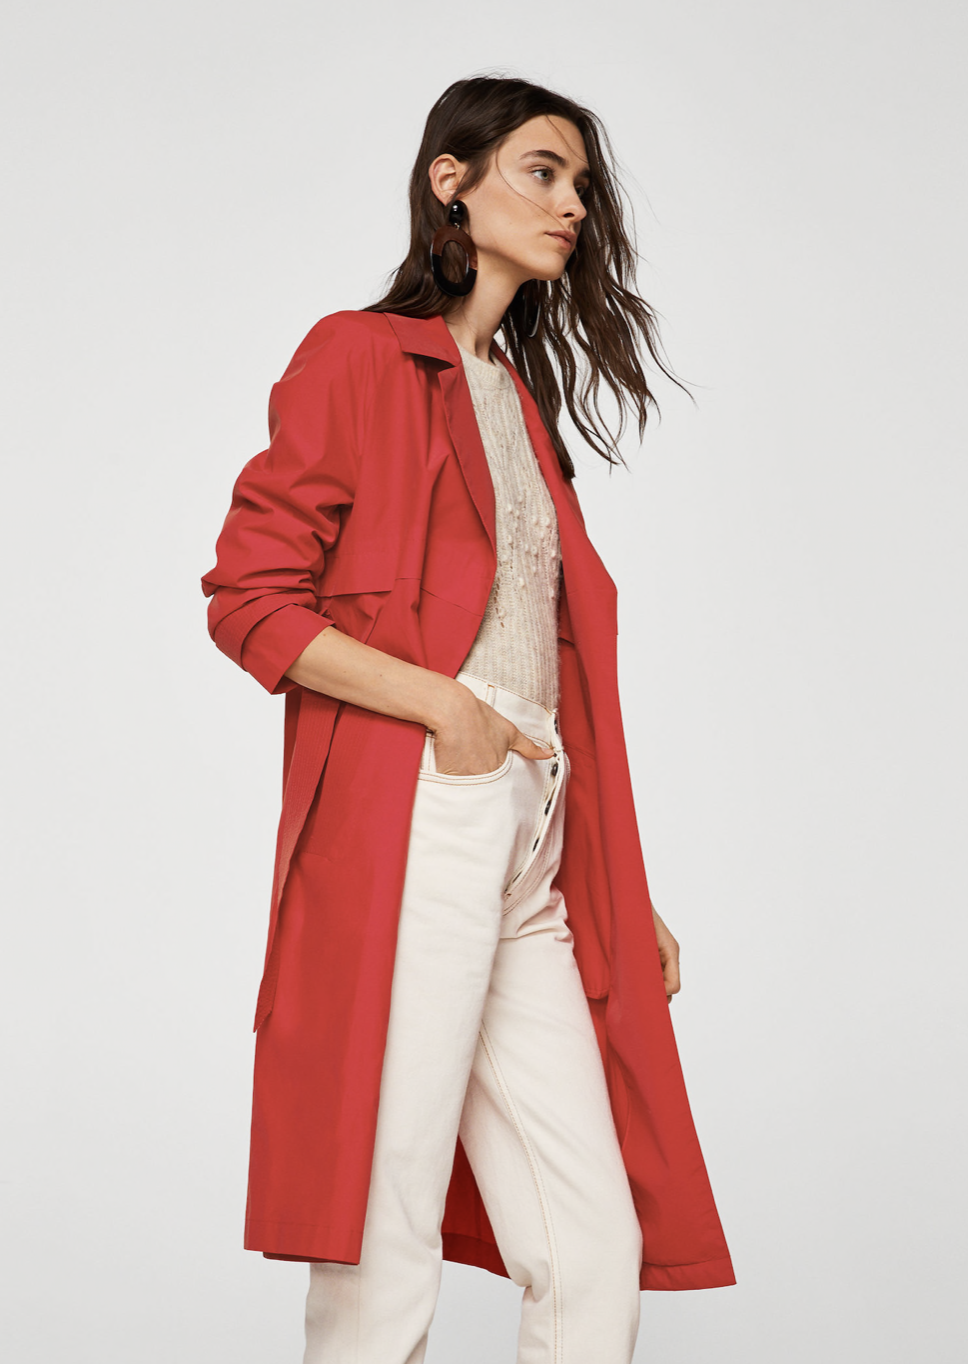 classic belted trench –$119.99